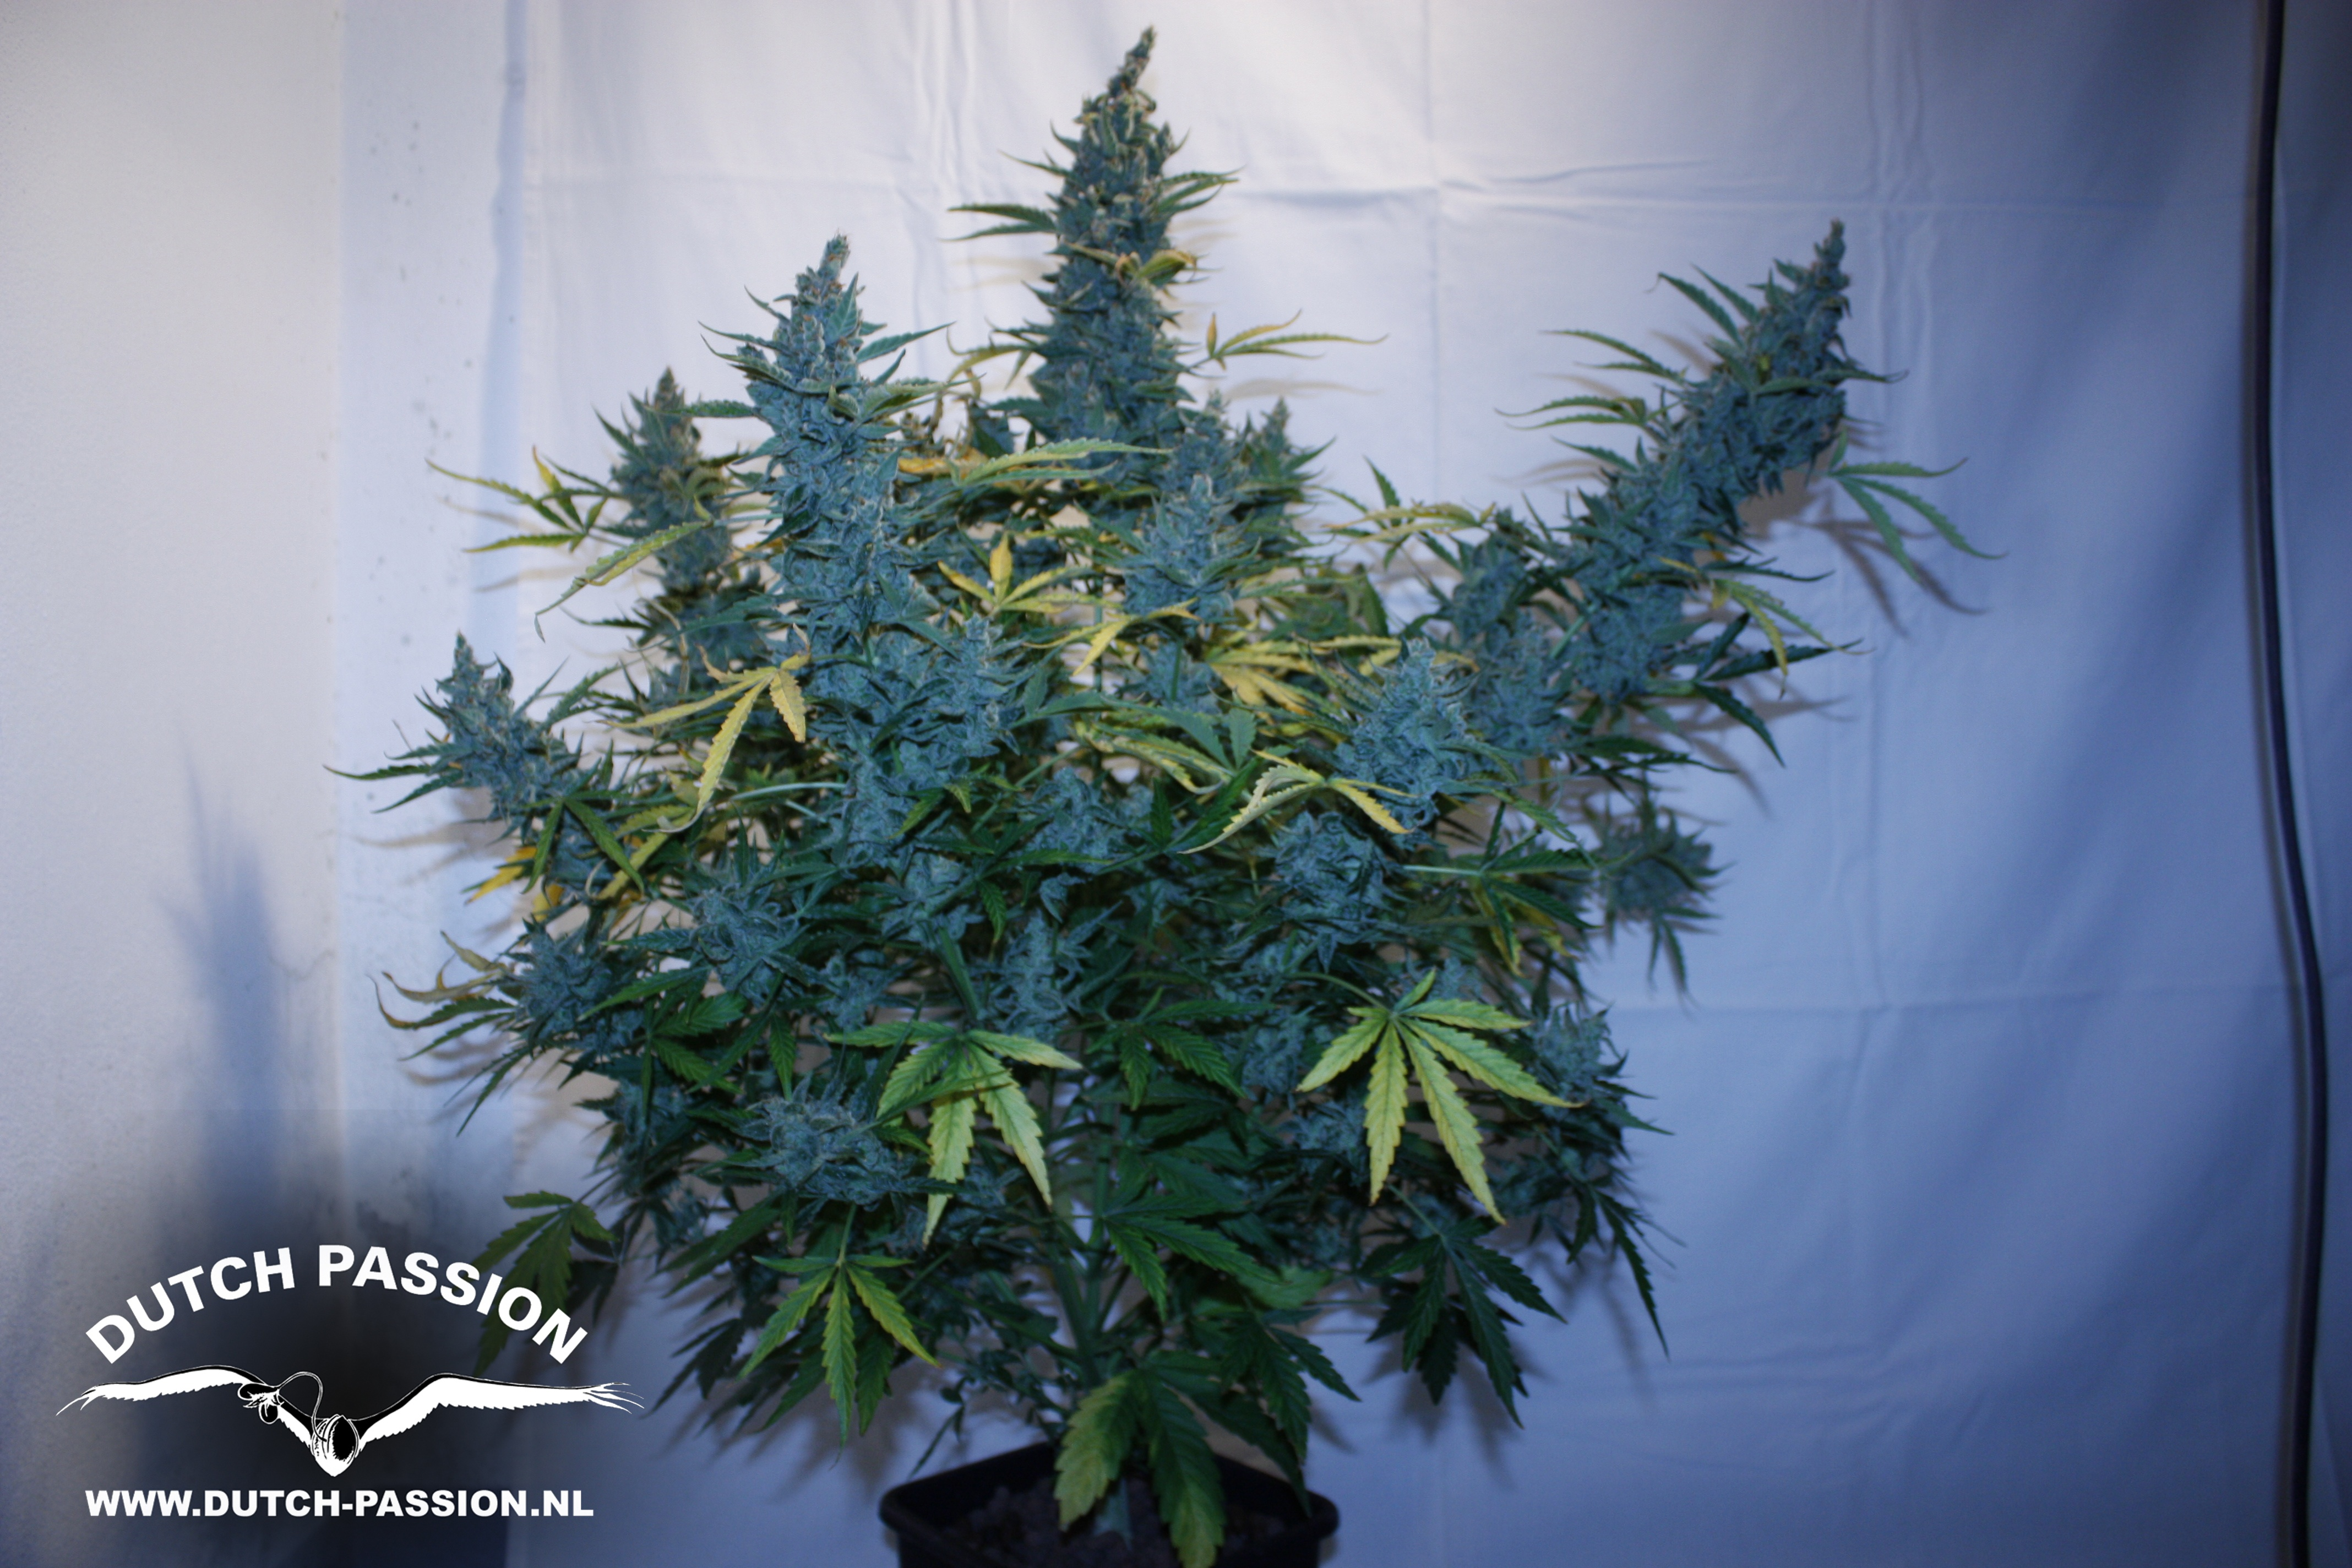 Safe Auto Customer Service >> Tundra - Auto Flowering Cannabis Seeds - Buy safely from Dutch Passion